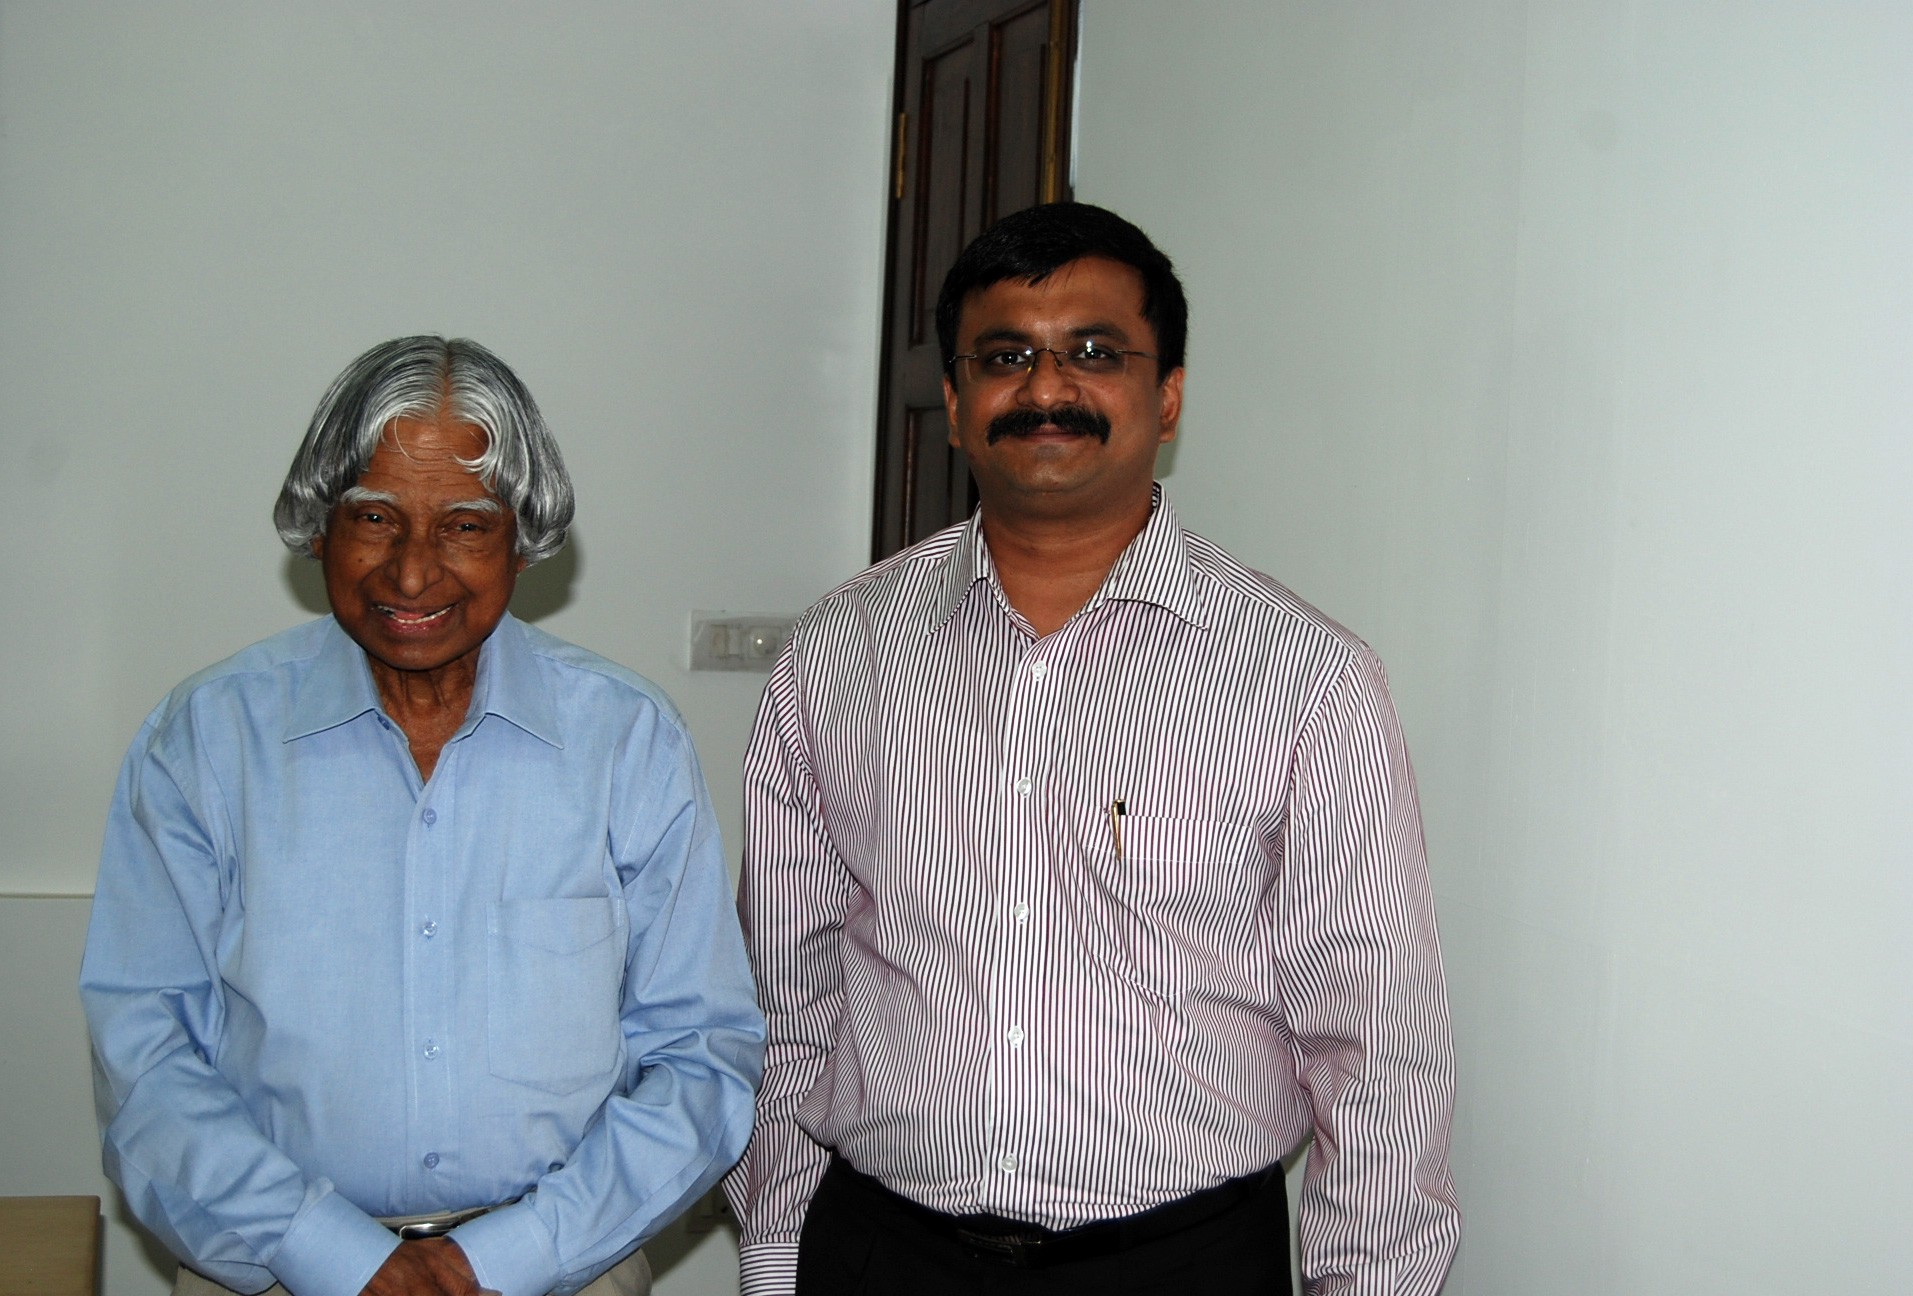 With Dr.A.P.J.Abdul Kalam, Former President of India (6 May 2010)